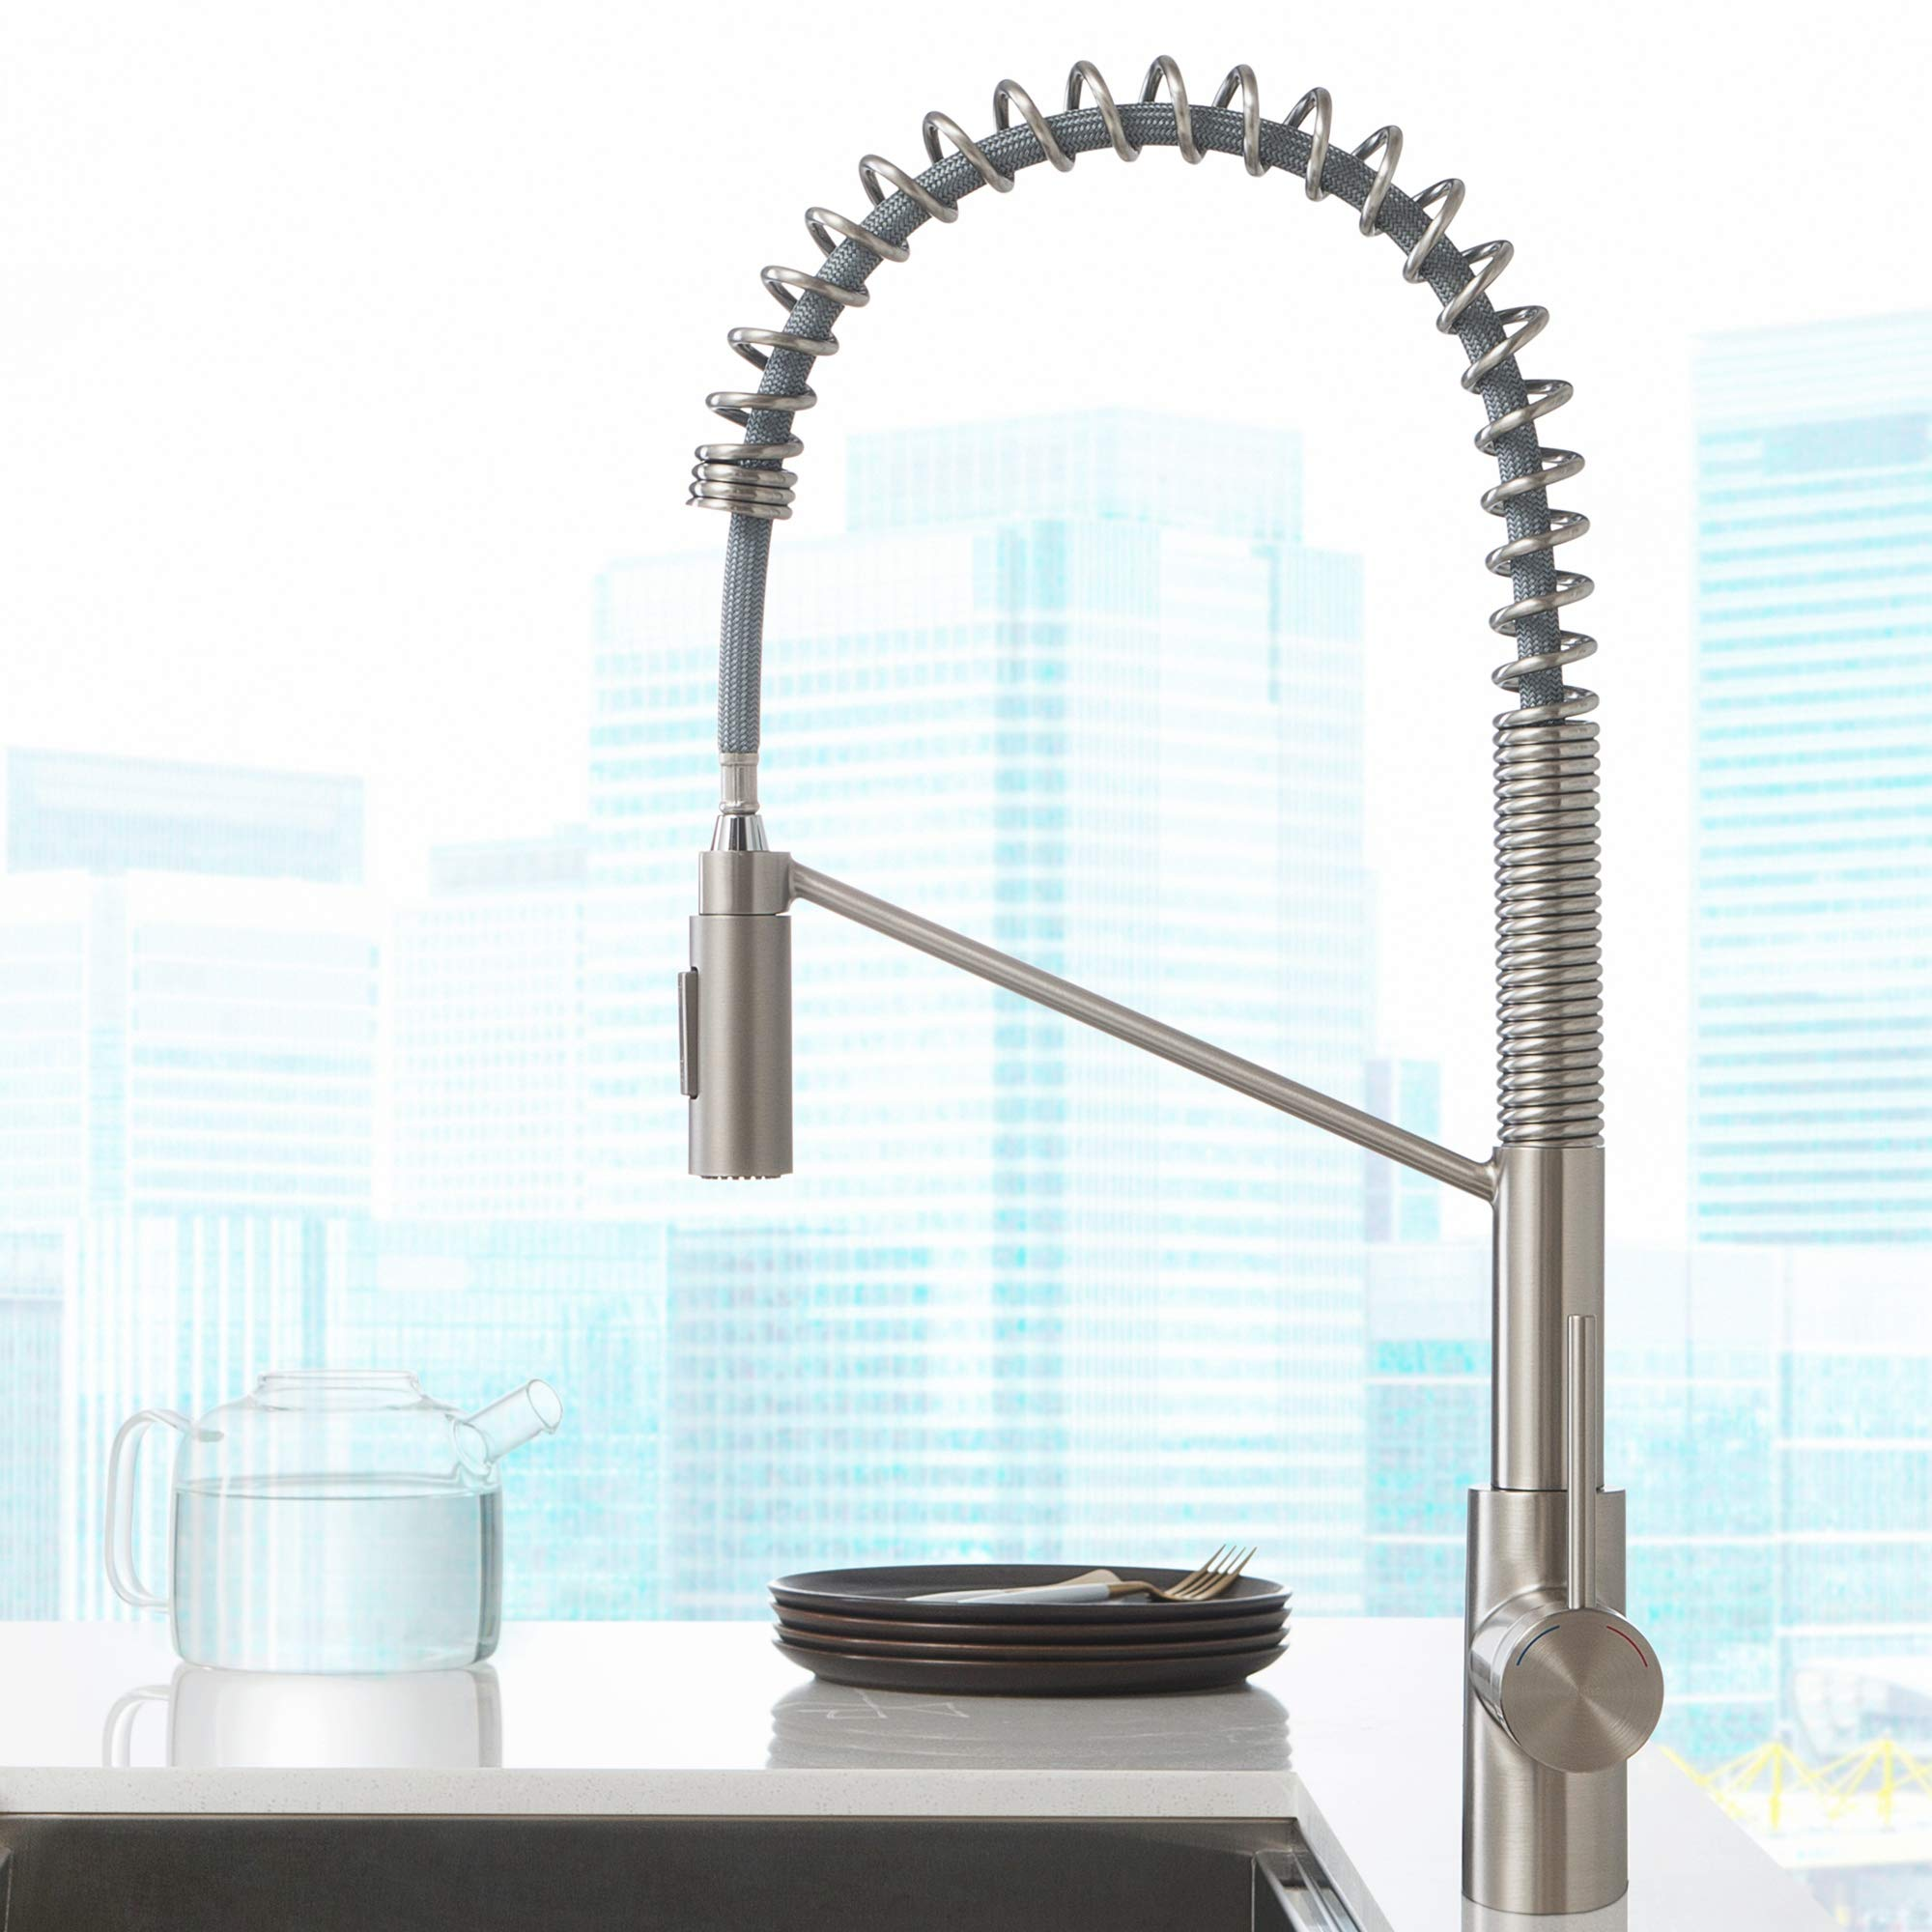 Kraus KPF-2631SFS Oletto Kitchen Faucet, 21.75 inch, Spot Free Stainless Steel by Kraus (Image #14)